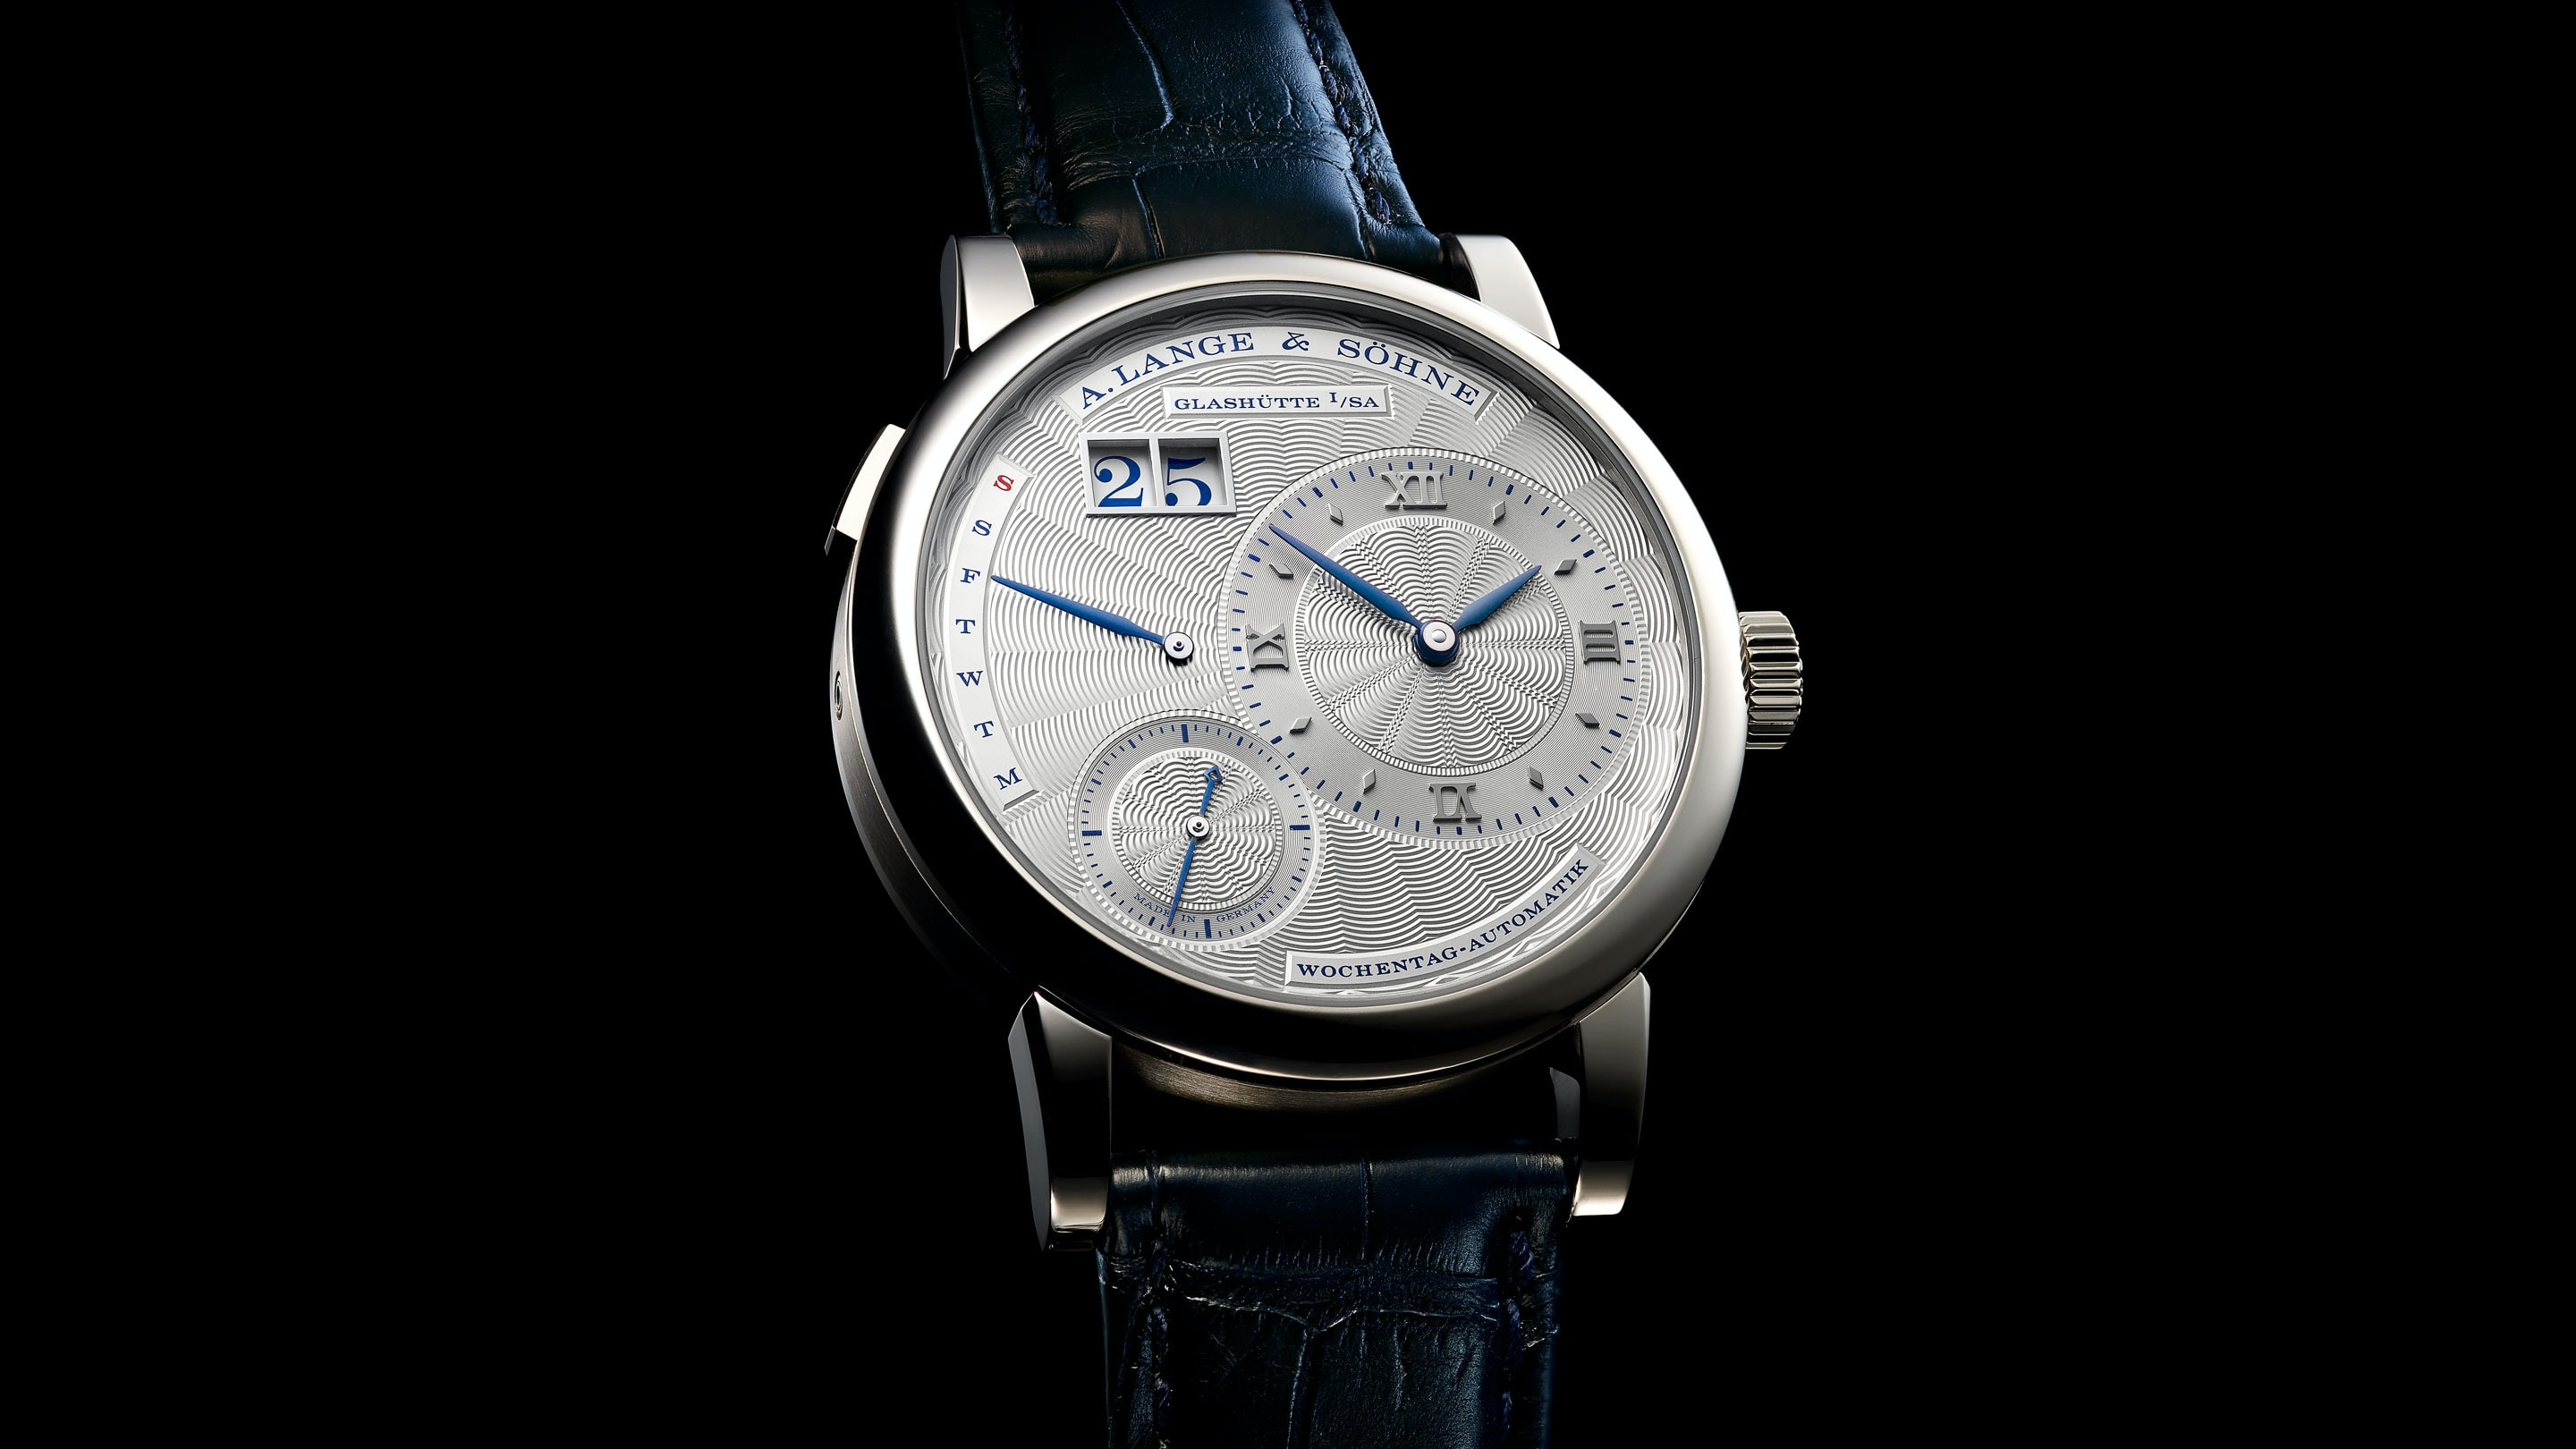 Introducing: The A. Lange & Söhne Lange 1 Daymatic Tokyo Boutique 10th Anniversary Limited Edition